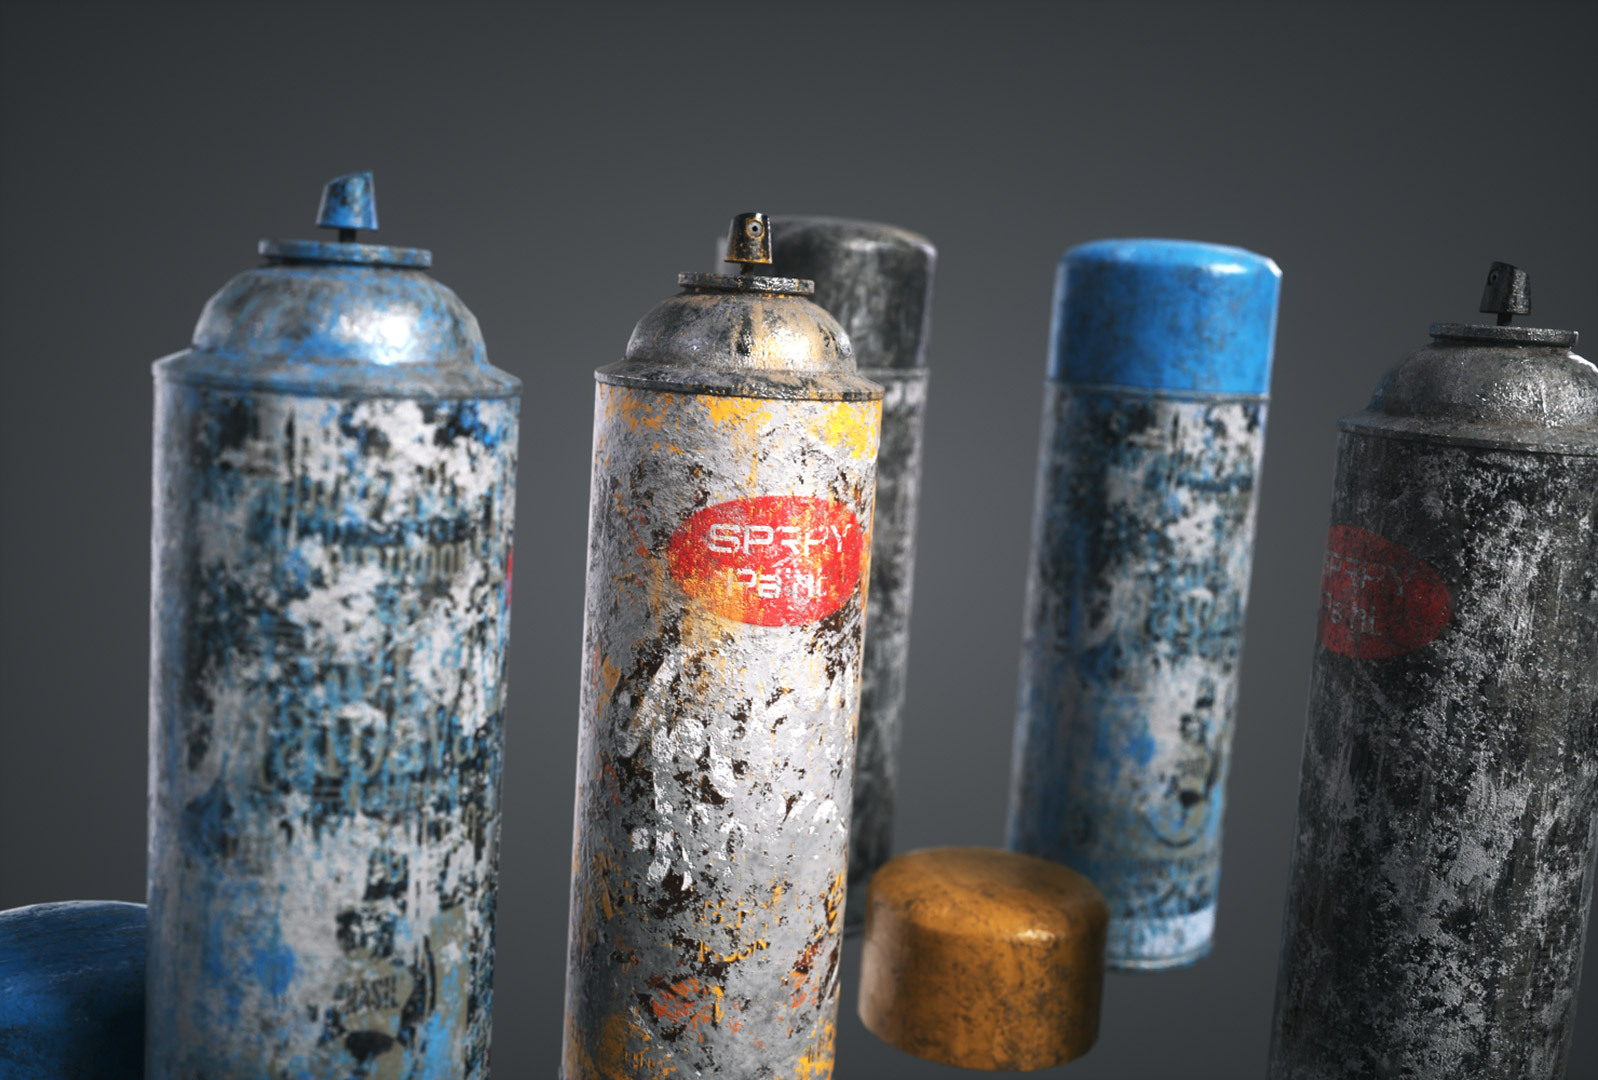 PURCHASED 3D SPRAY CAN MODELS